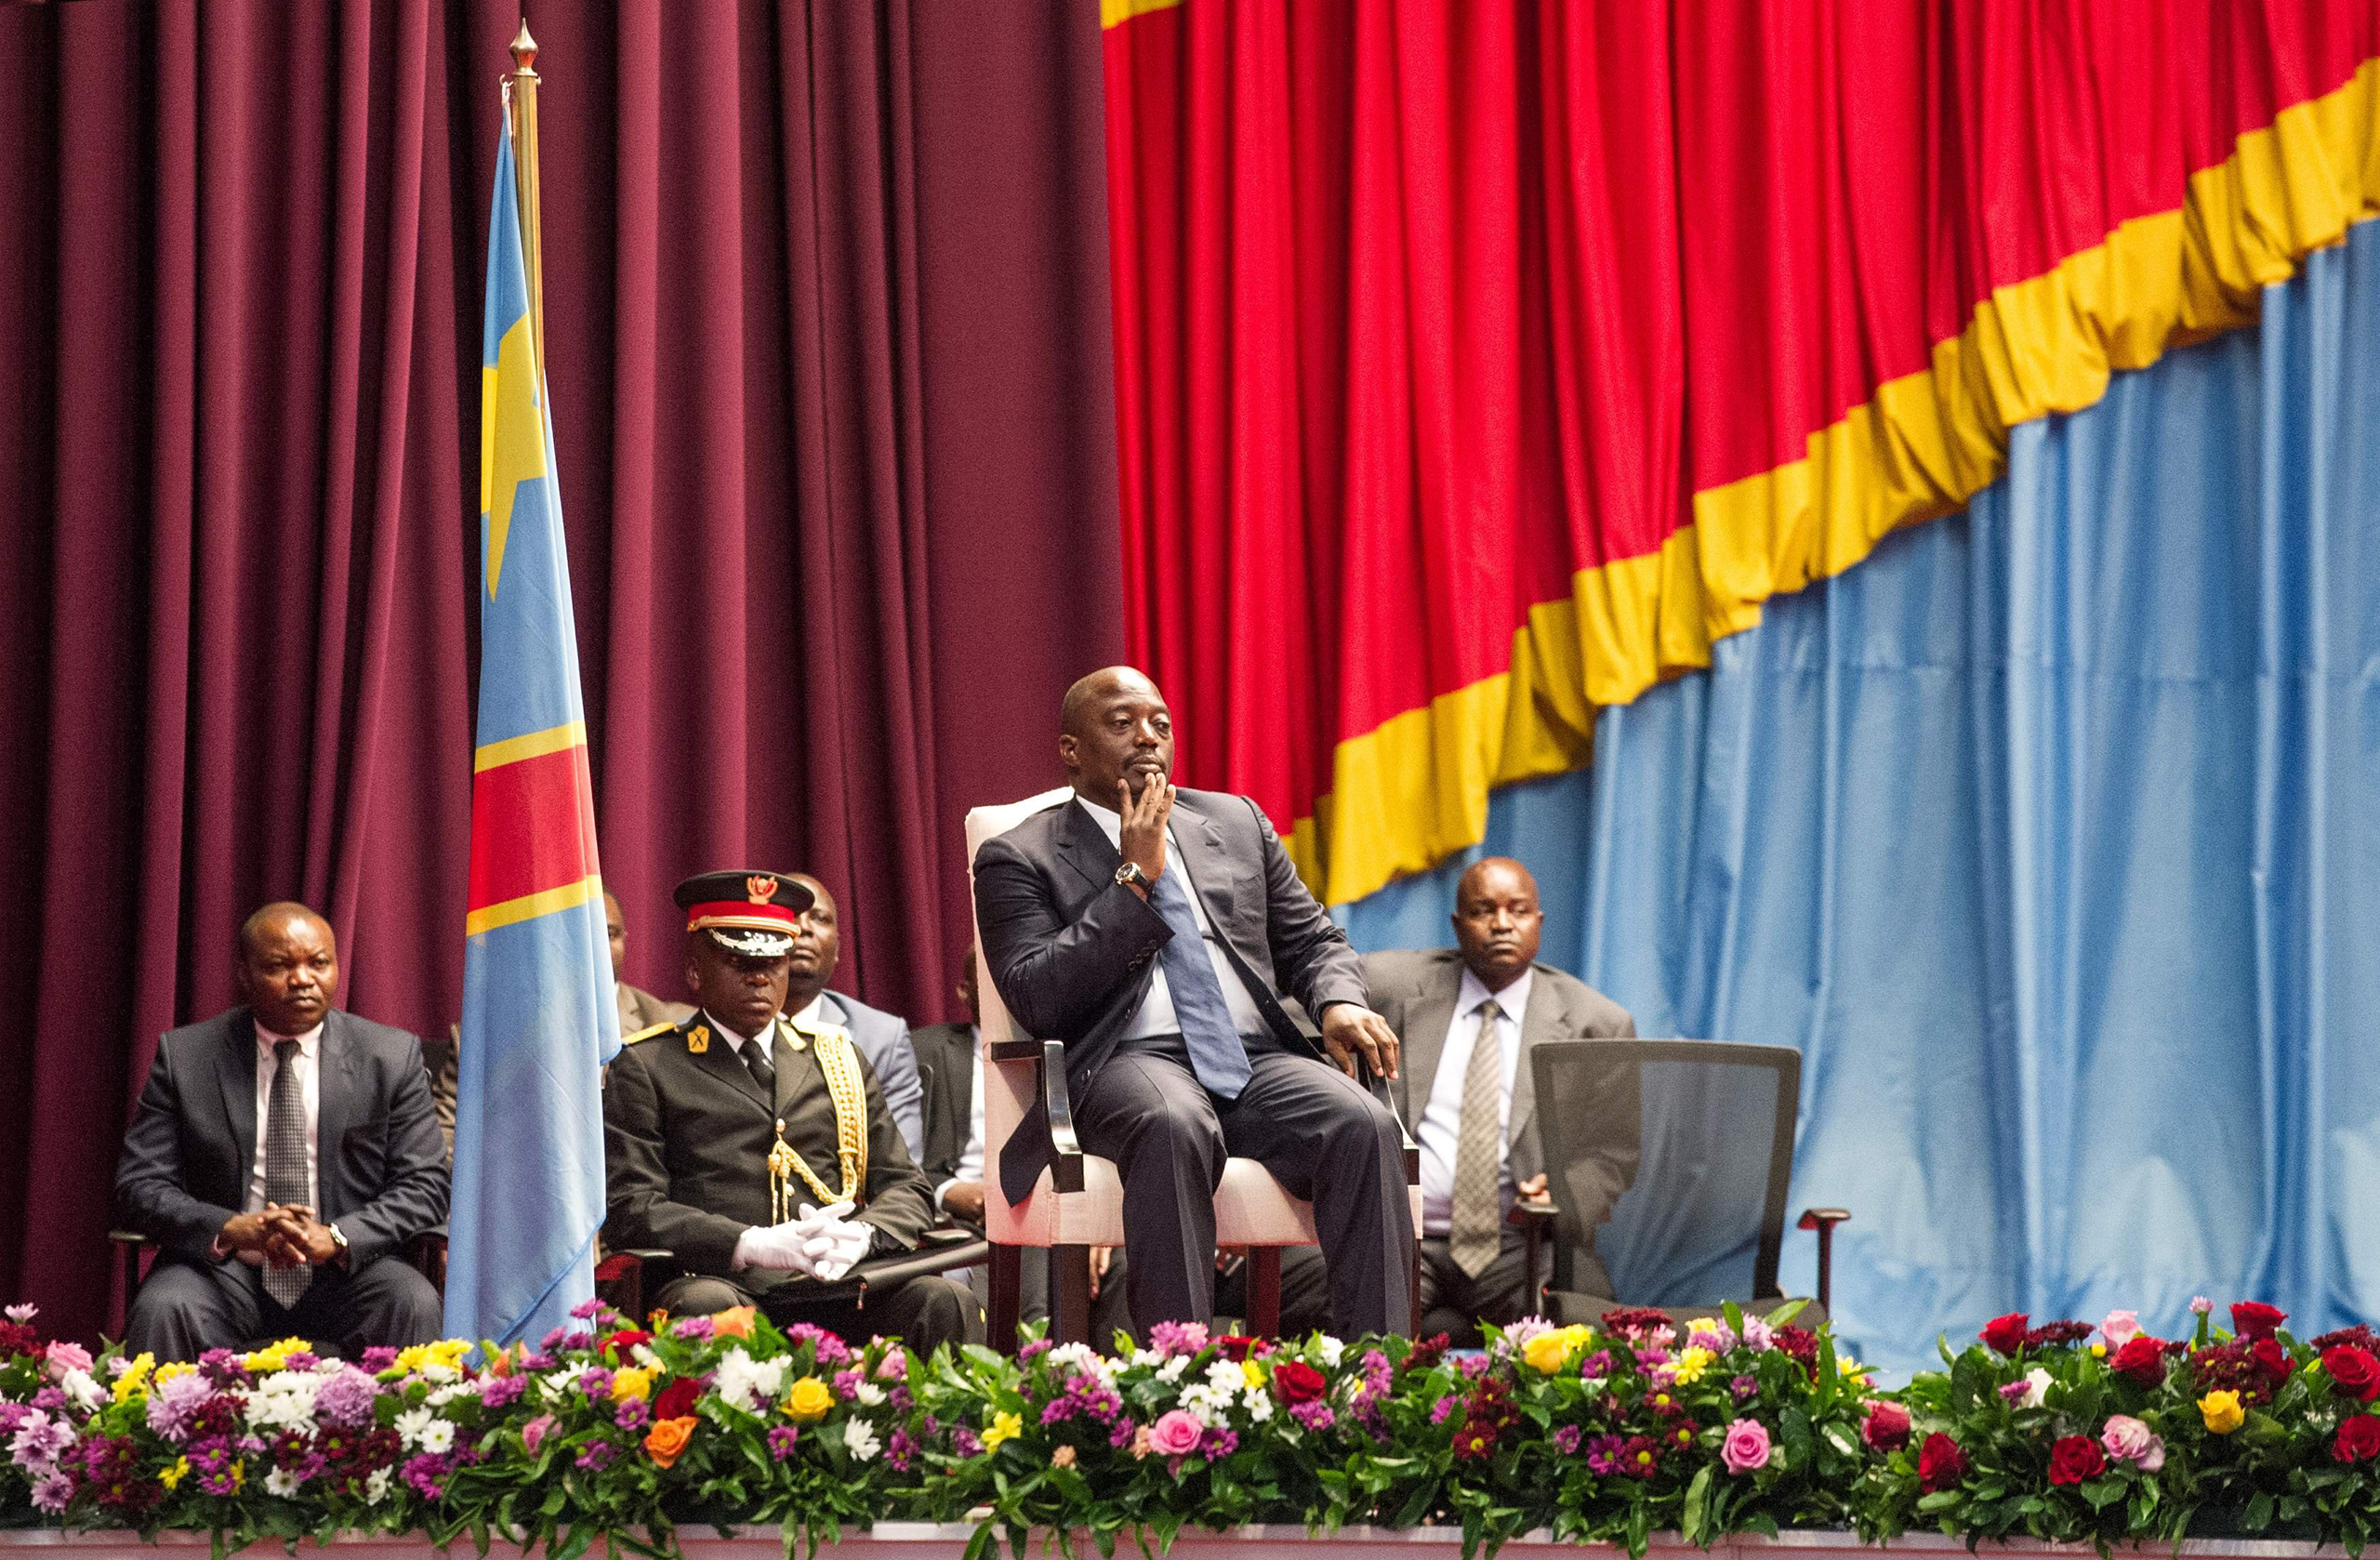 Congolese President Joseph Kabila sits during a special joint session of parliament in Kinshasa on Nov. 15, 2016, the day after Prime Minister Augustin Matata resigned to make way for an opposition figure in line with a controversial deal that effectively extended the president's term in office.